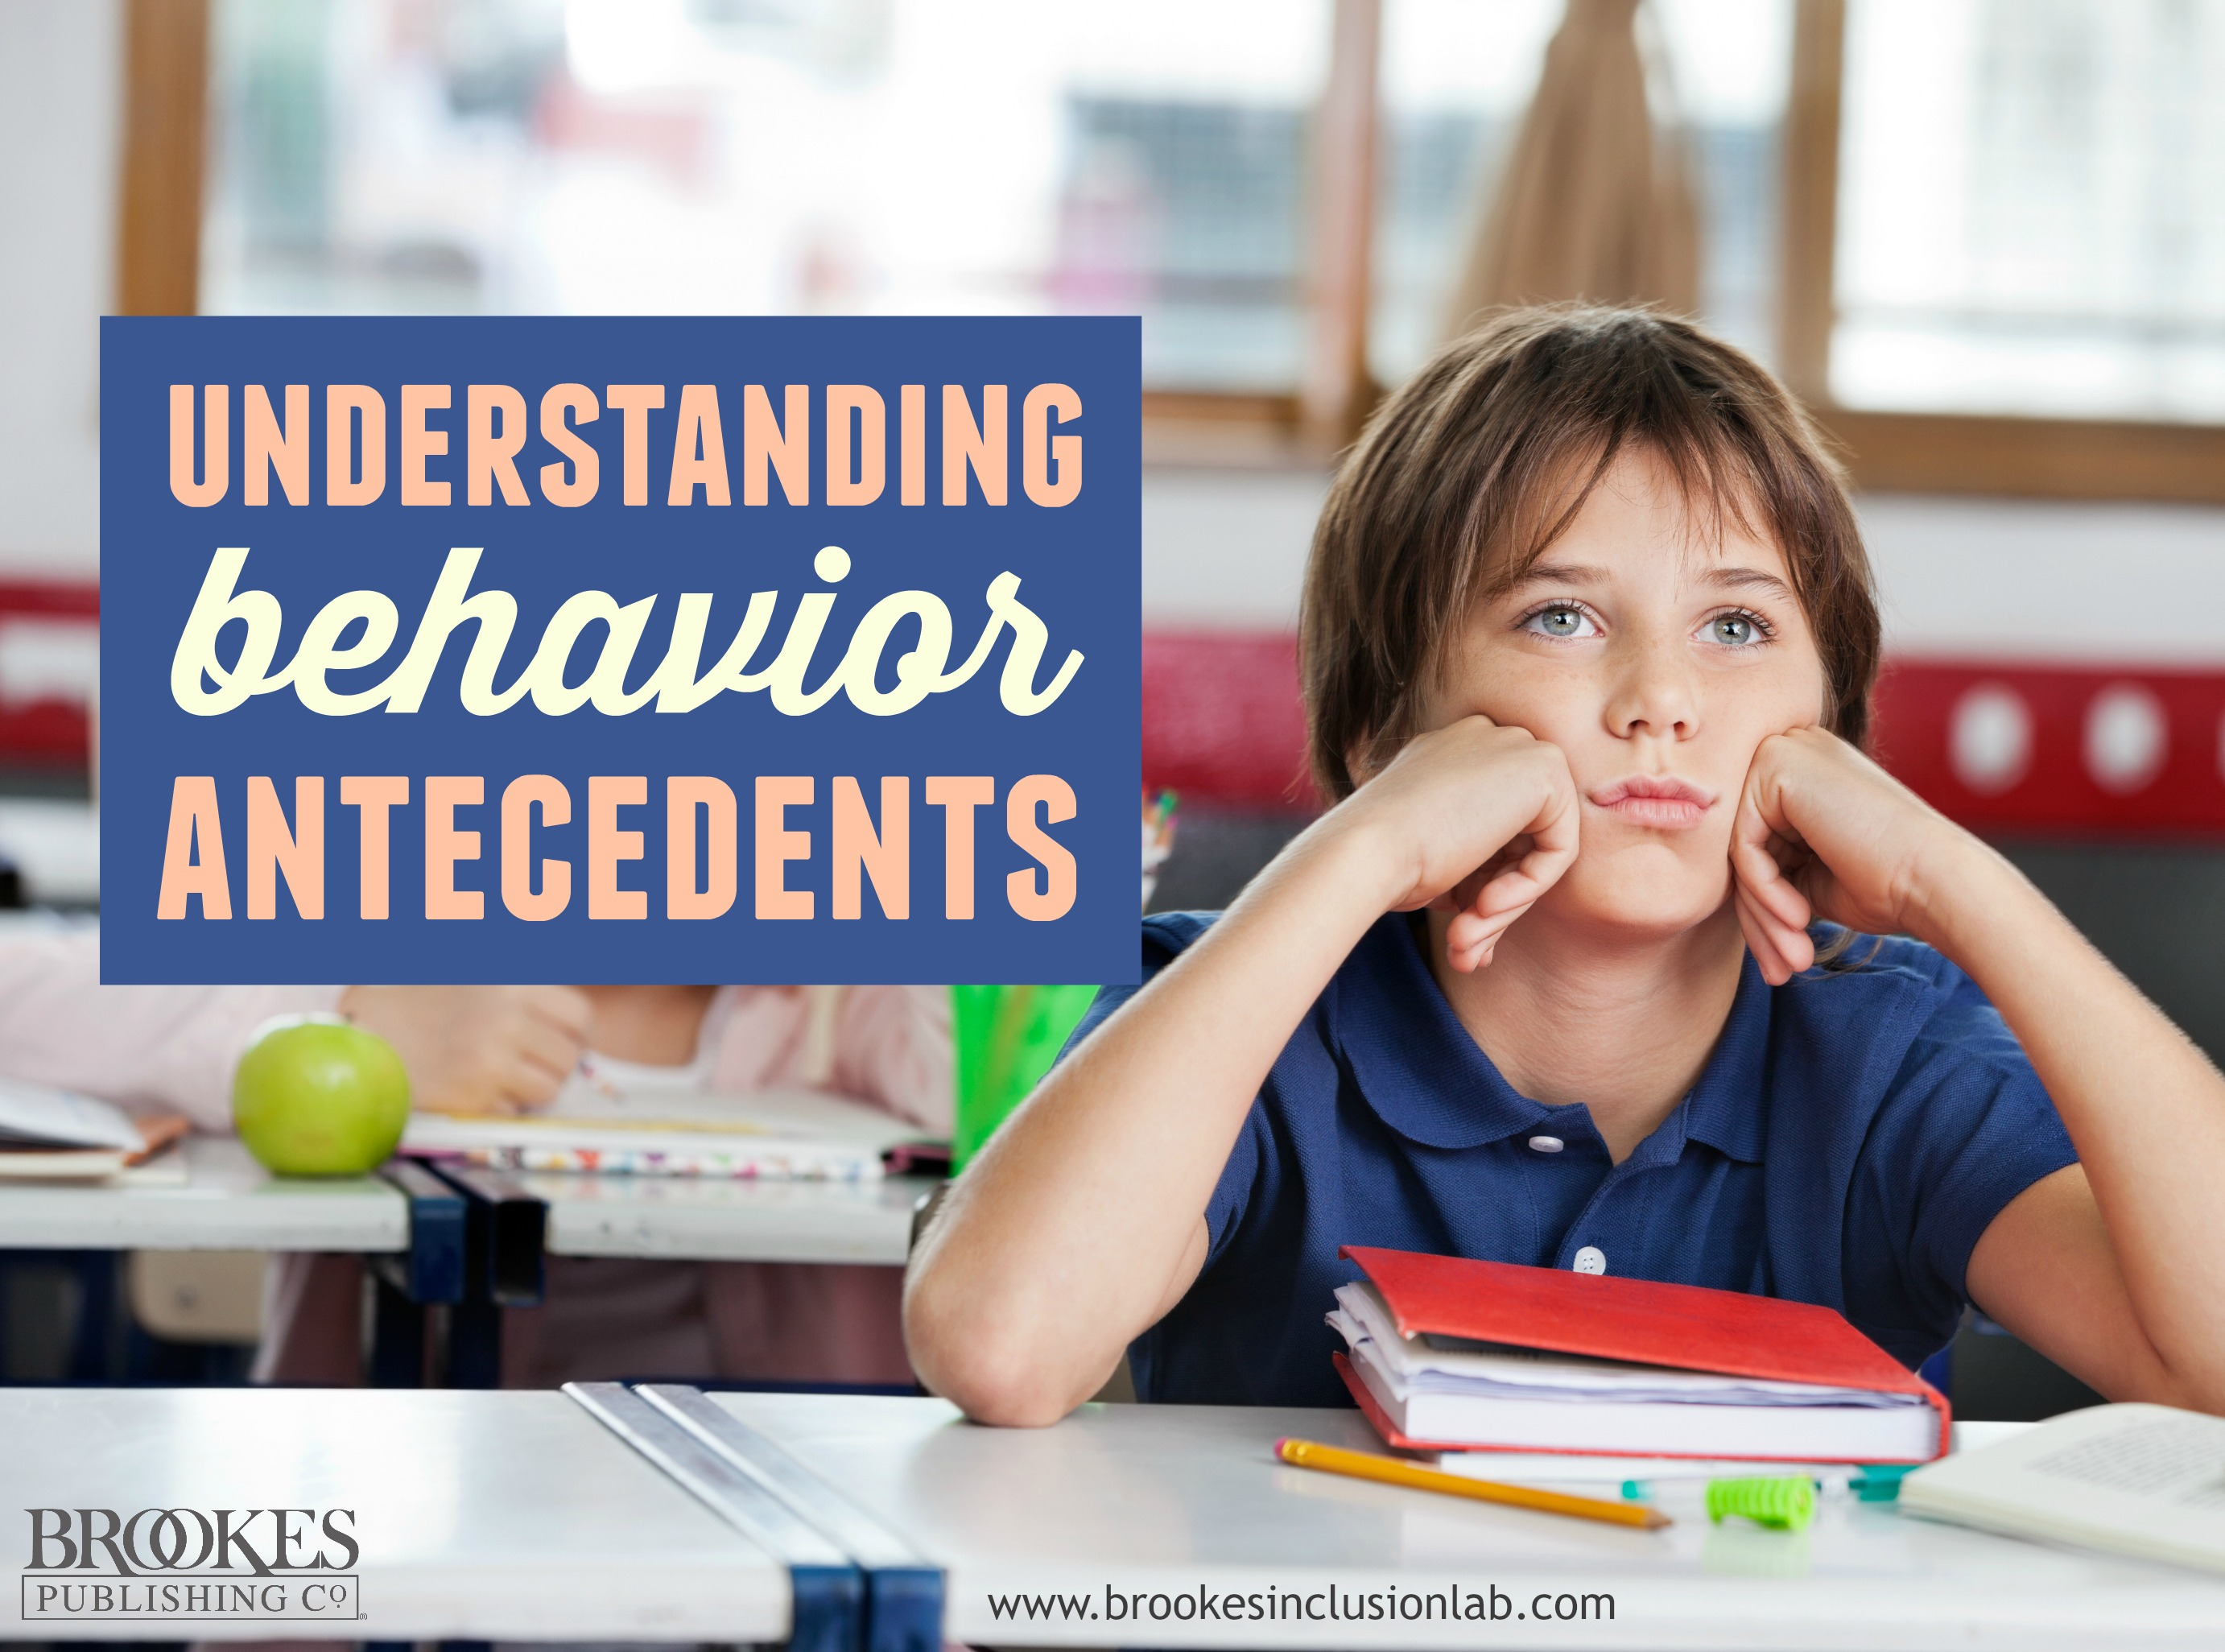 Why Does Jordan Misbehave?: Understanding Your Students' Behavior Antecedents